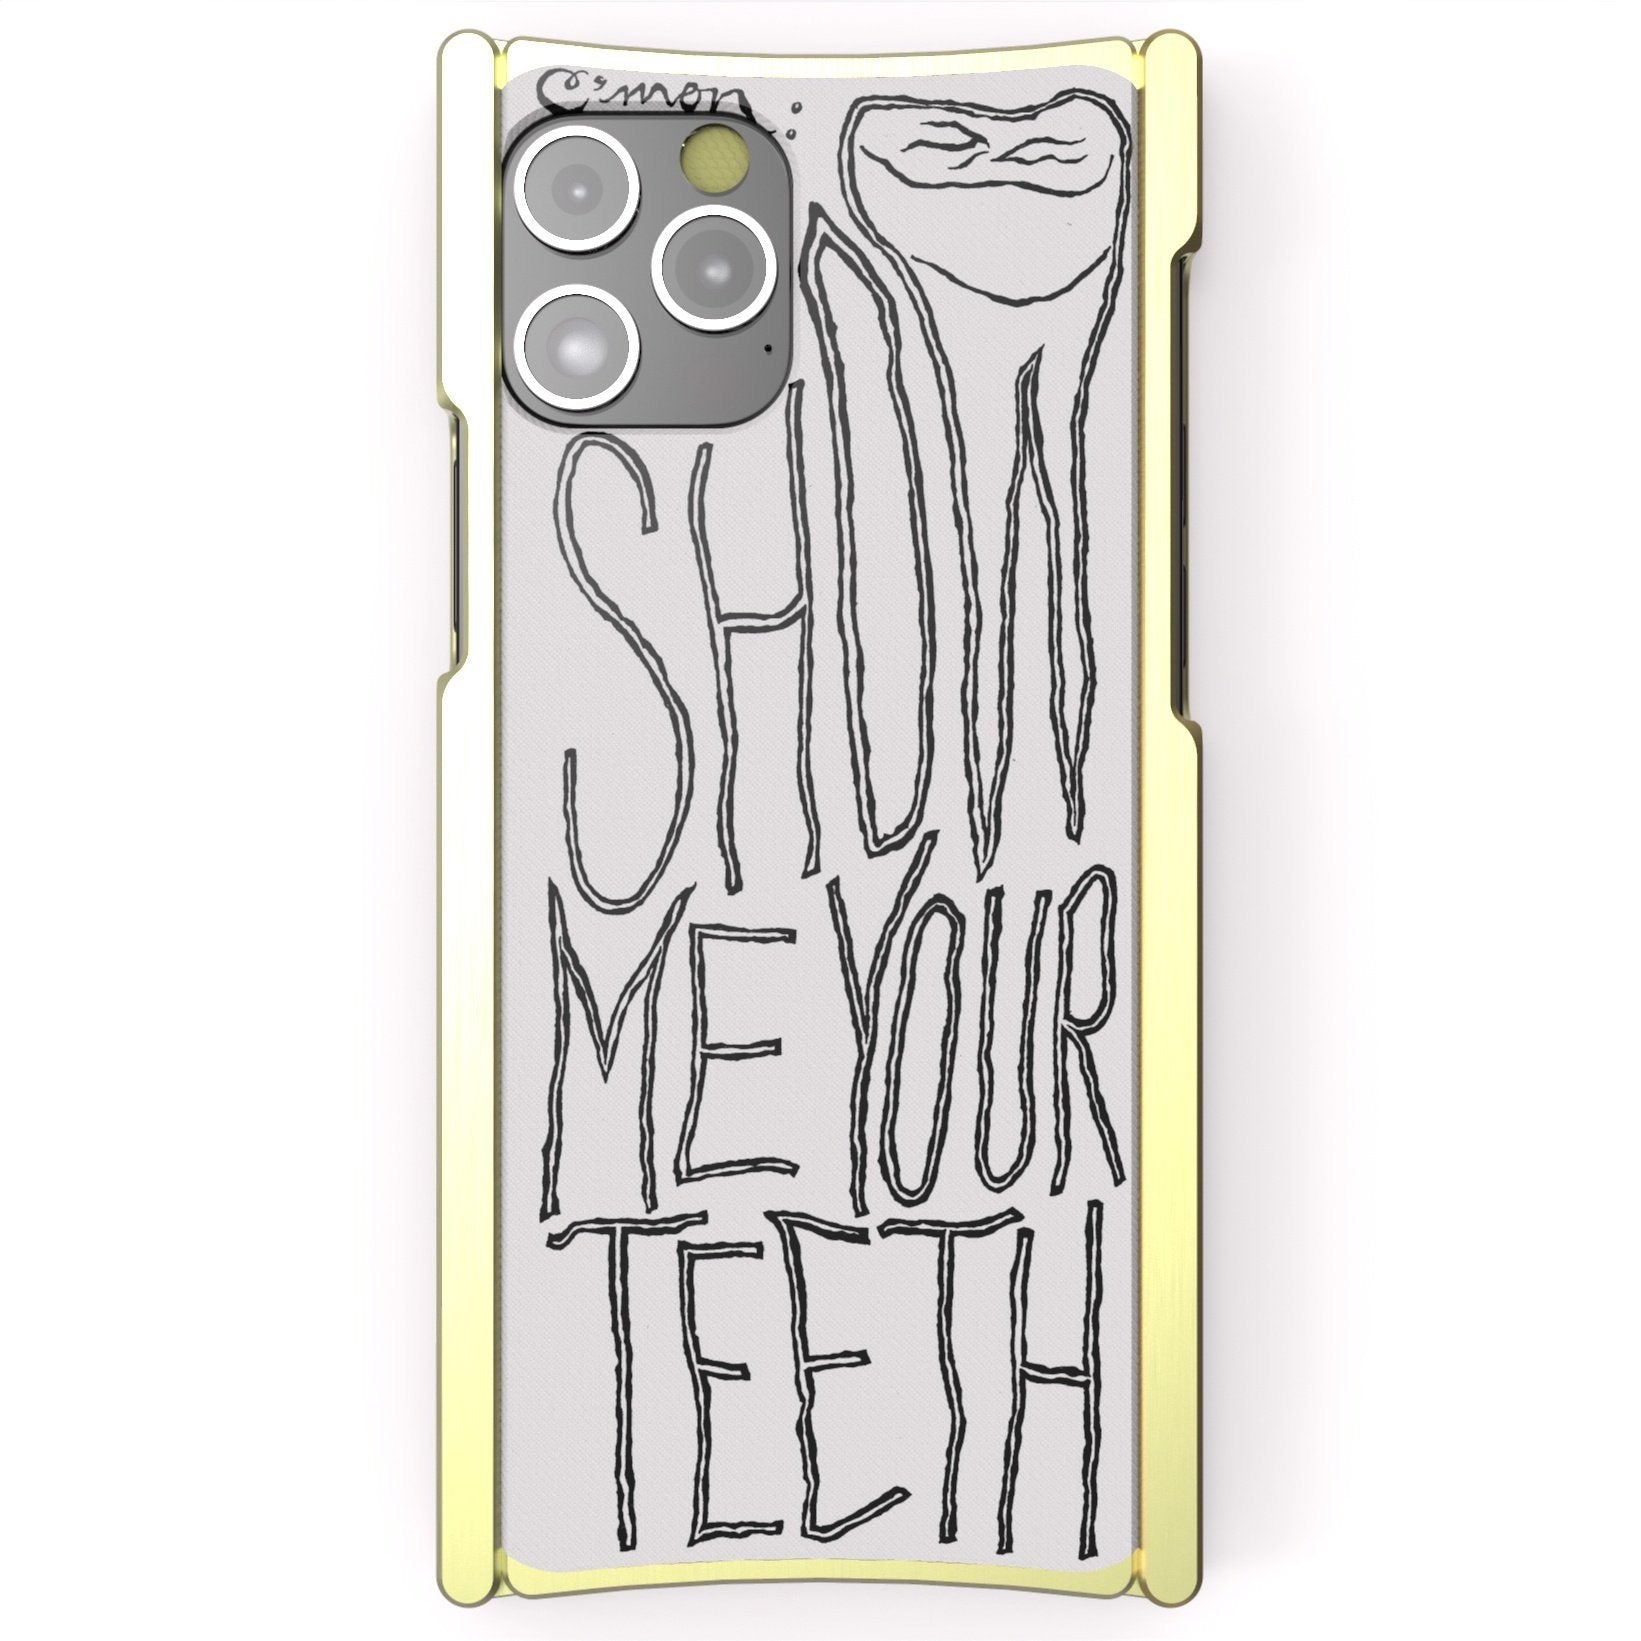 iPhone 12 Case Alex Gingrow, SHOW ME YOUR TEETH, Europa 12 Pro Brass and White G10